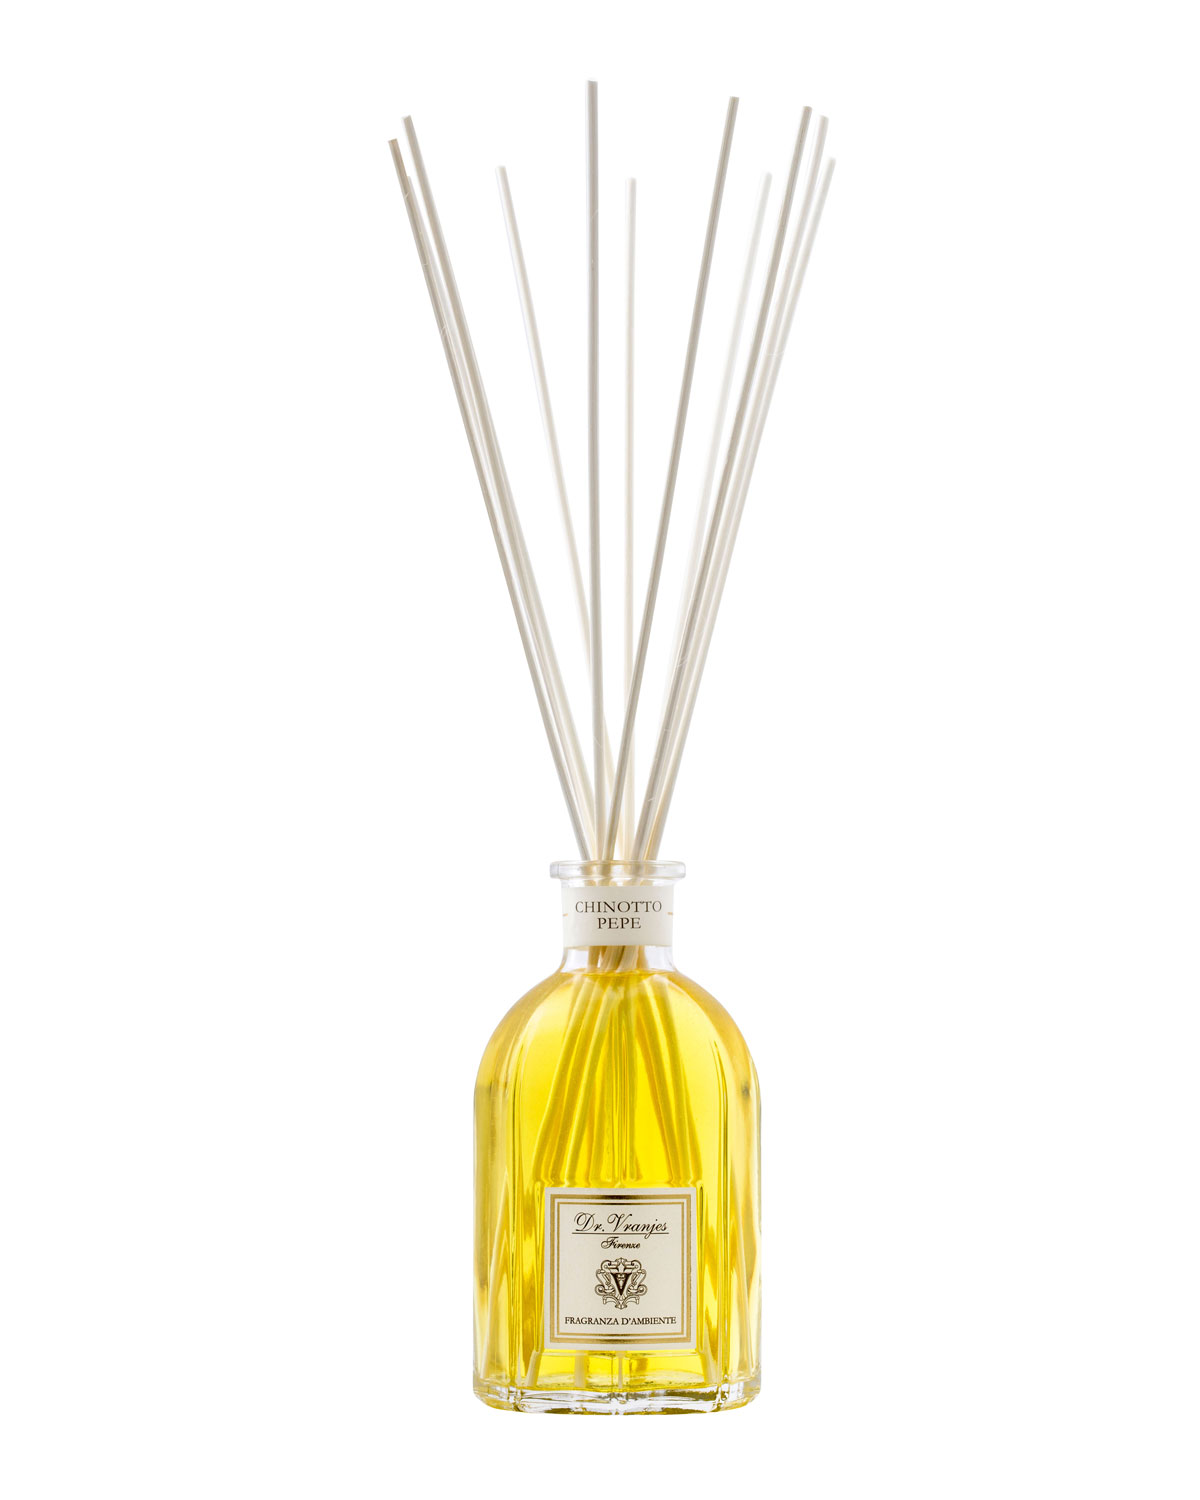 Dr. Vranjes Firenze 42 oz. Chinotto Pepe Glass Bottle Home Fragrance Diffuser